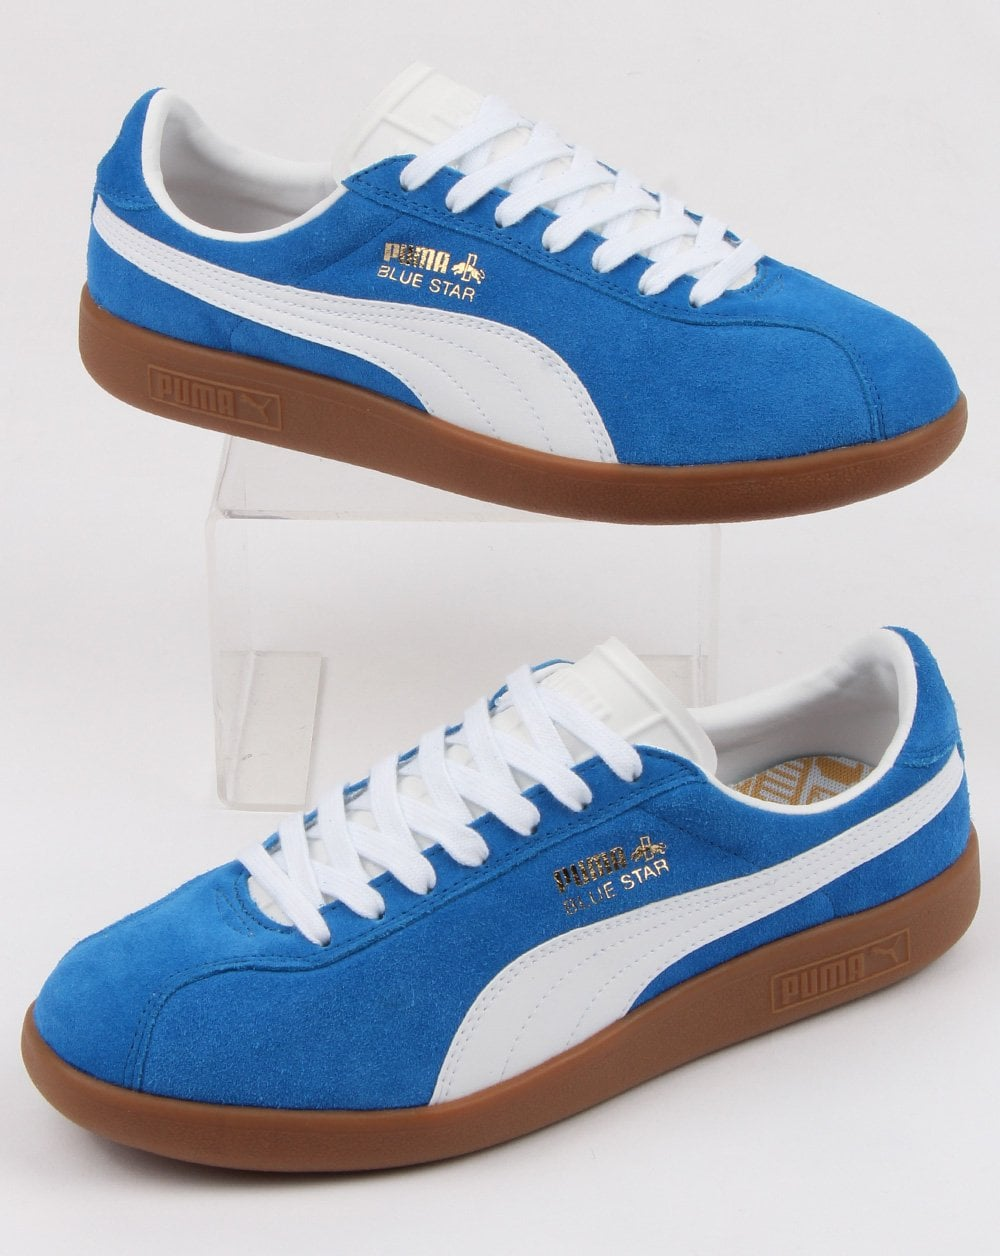 65fd6130a85f30 Puma Puma Blue Star Trainer Royal Blue white